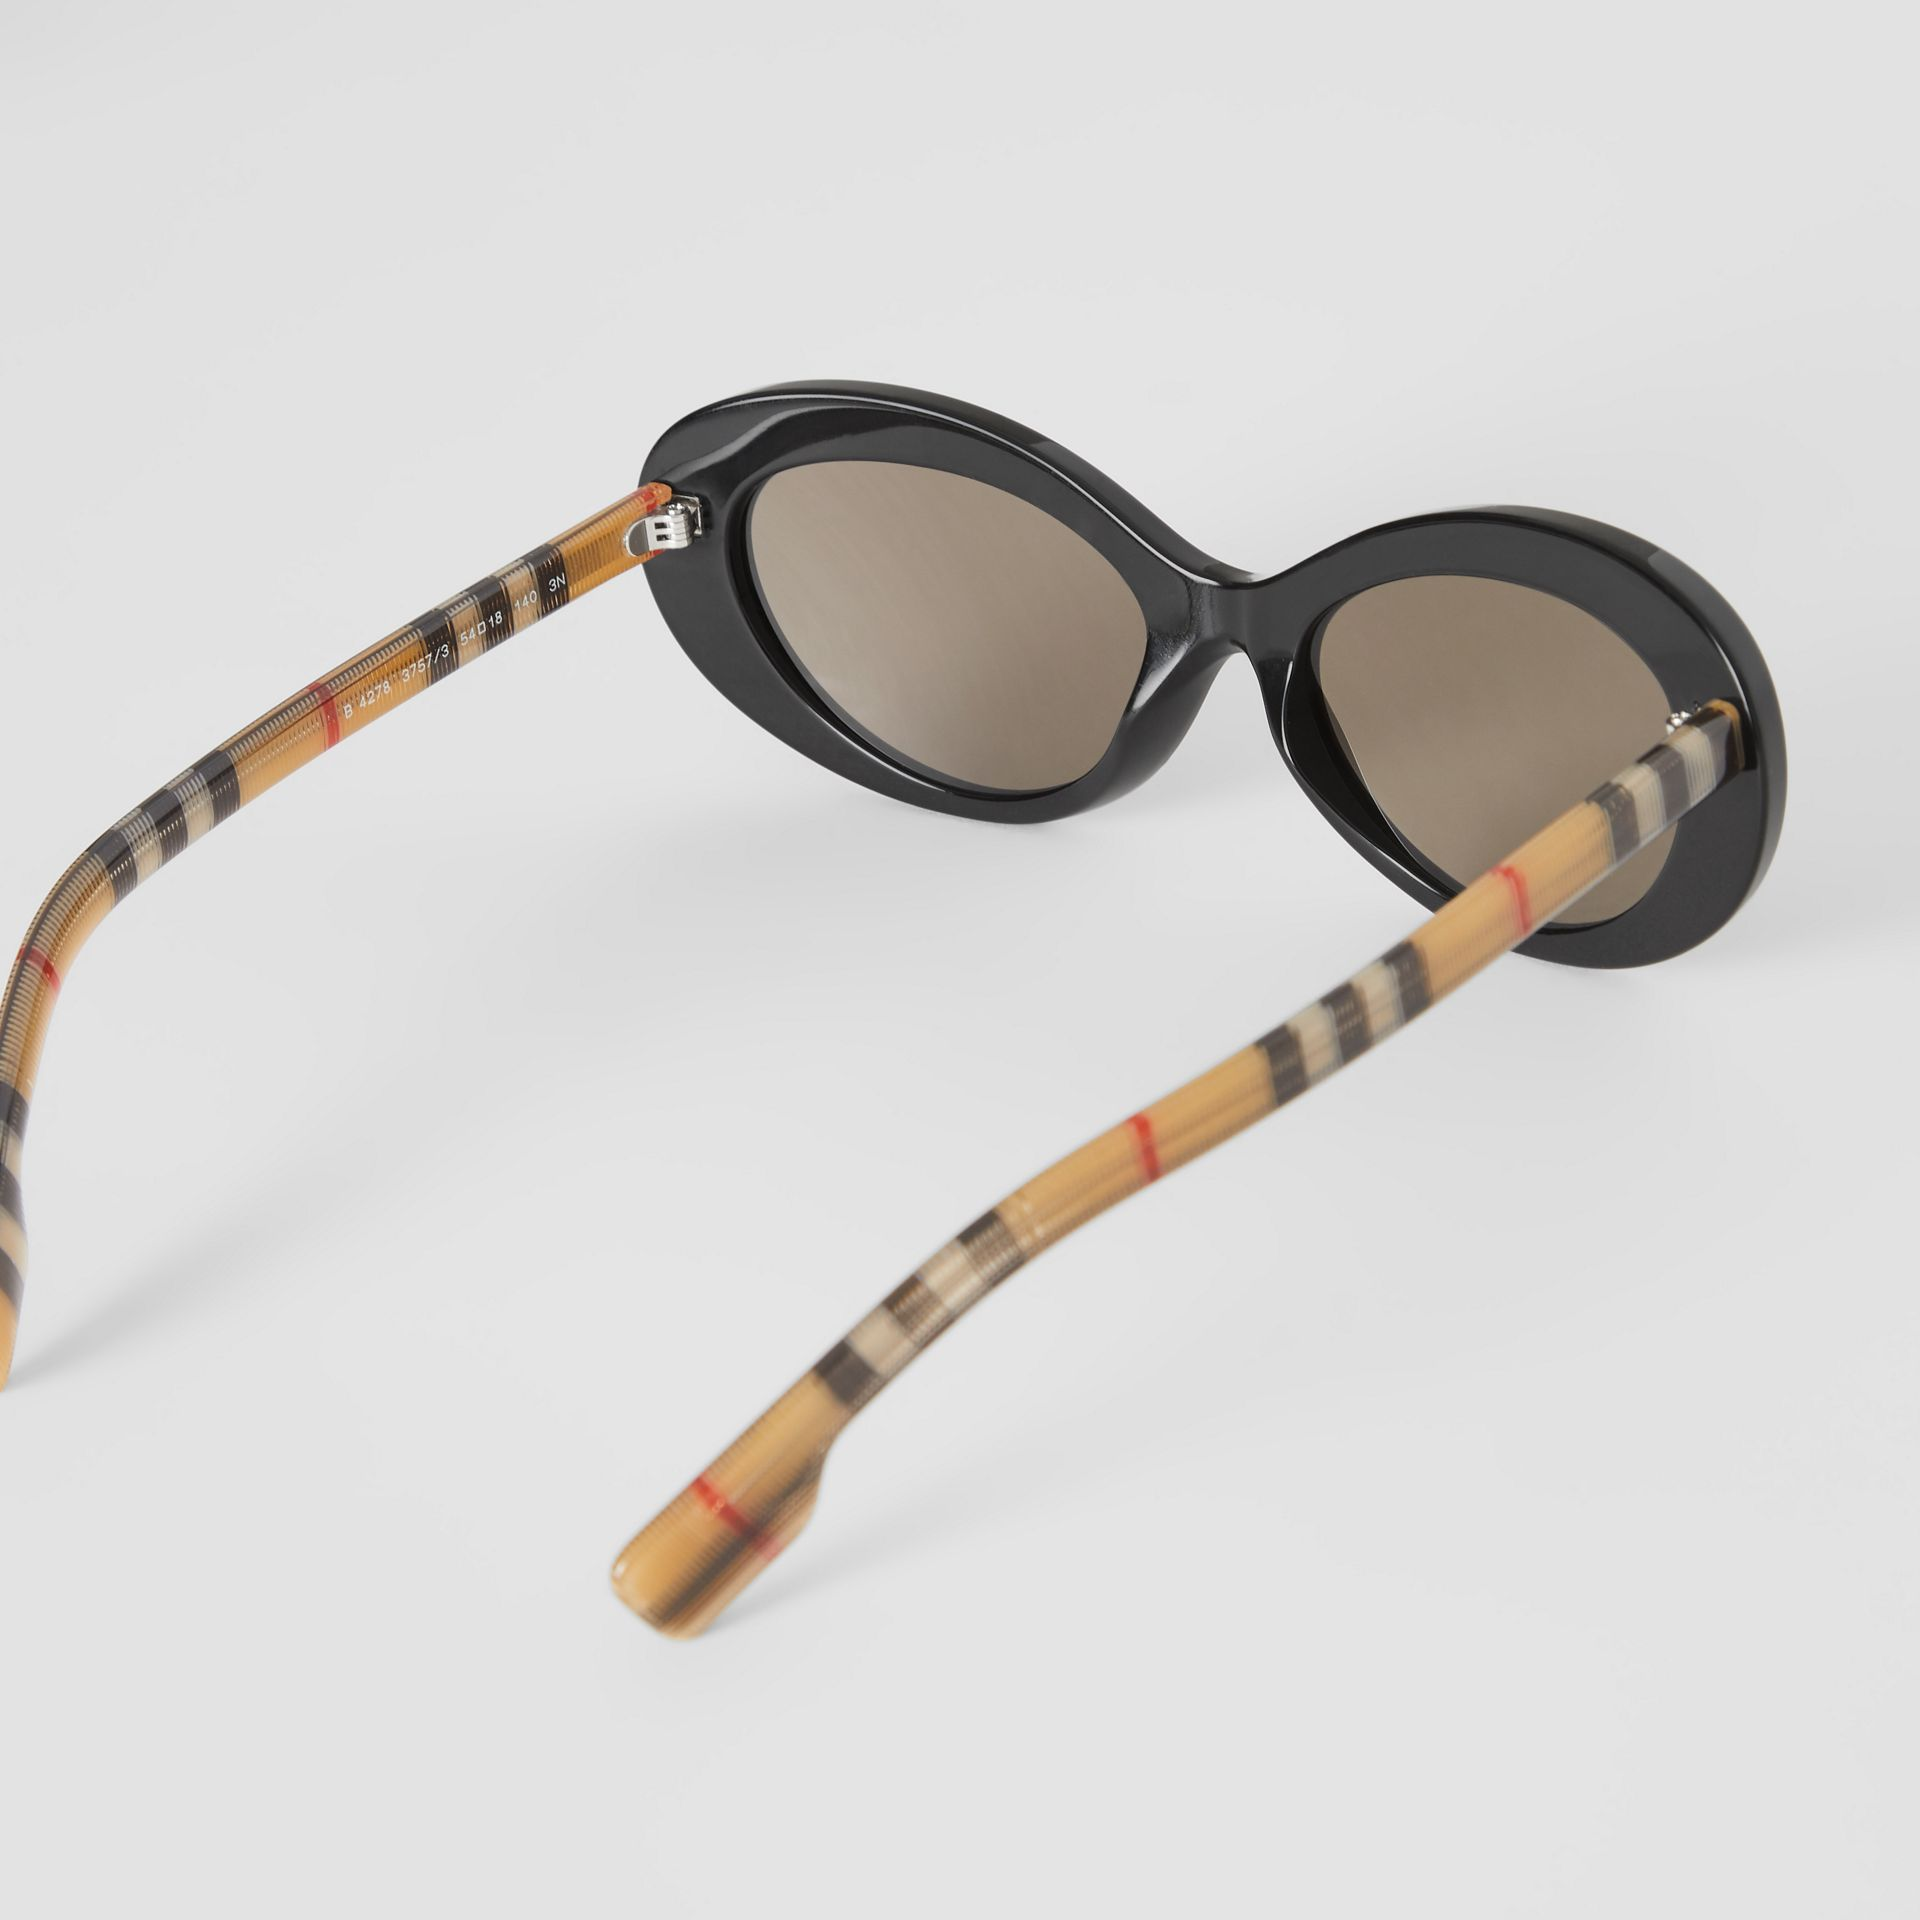 Vintage Check Detail Cat-eye Frame Sunglasses in Black - Women | Burberry Singapore - gallery image 4